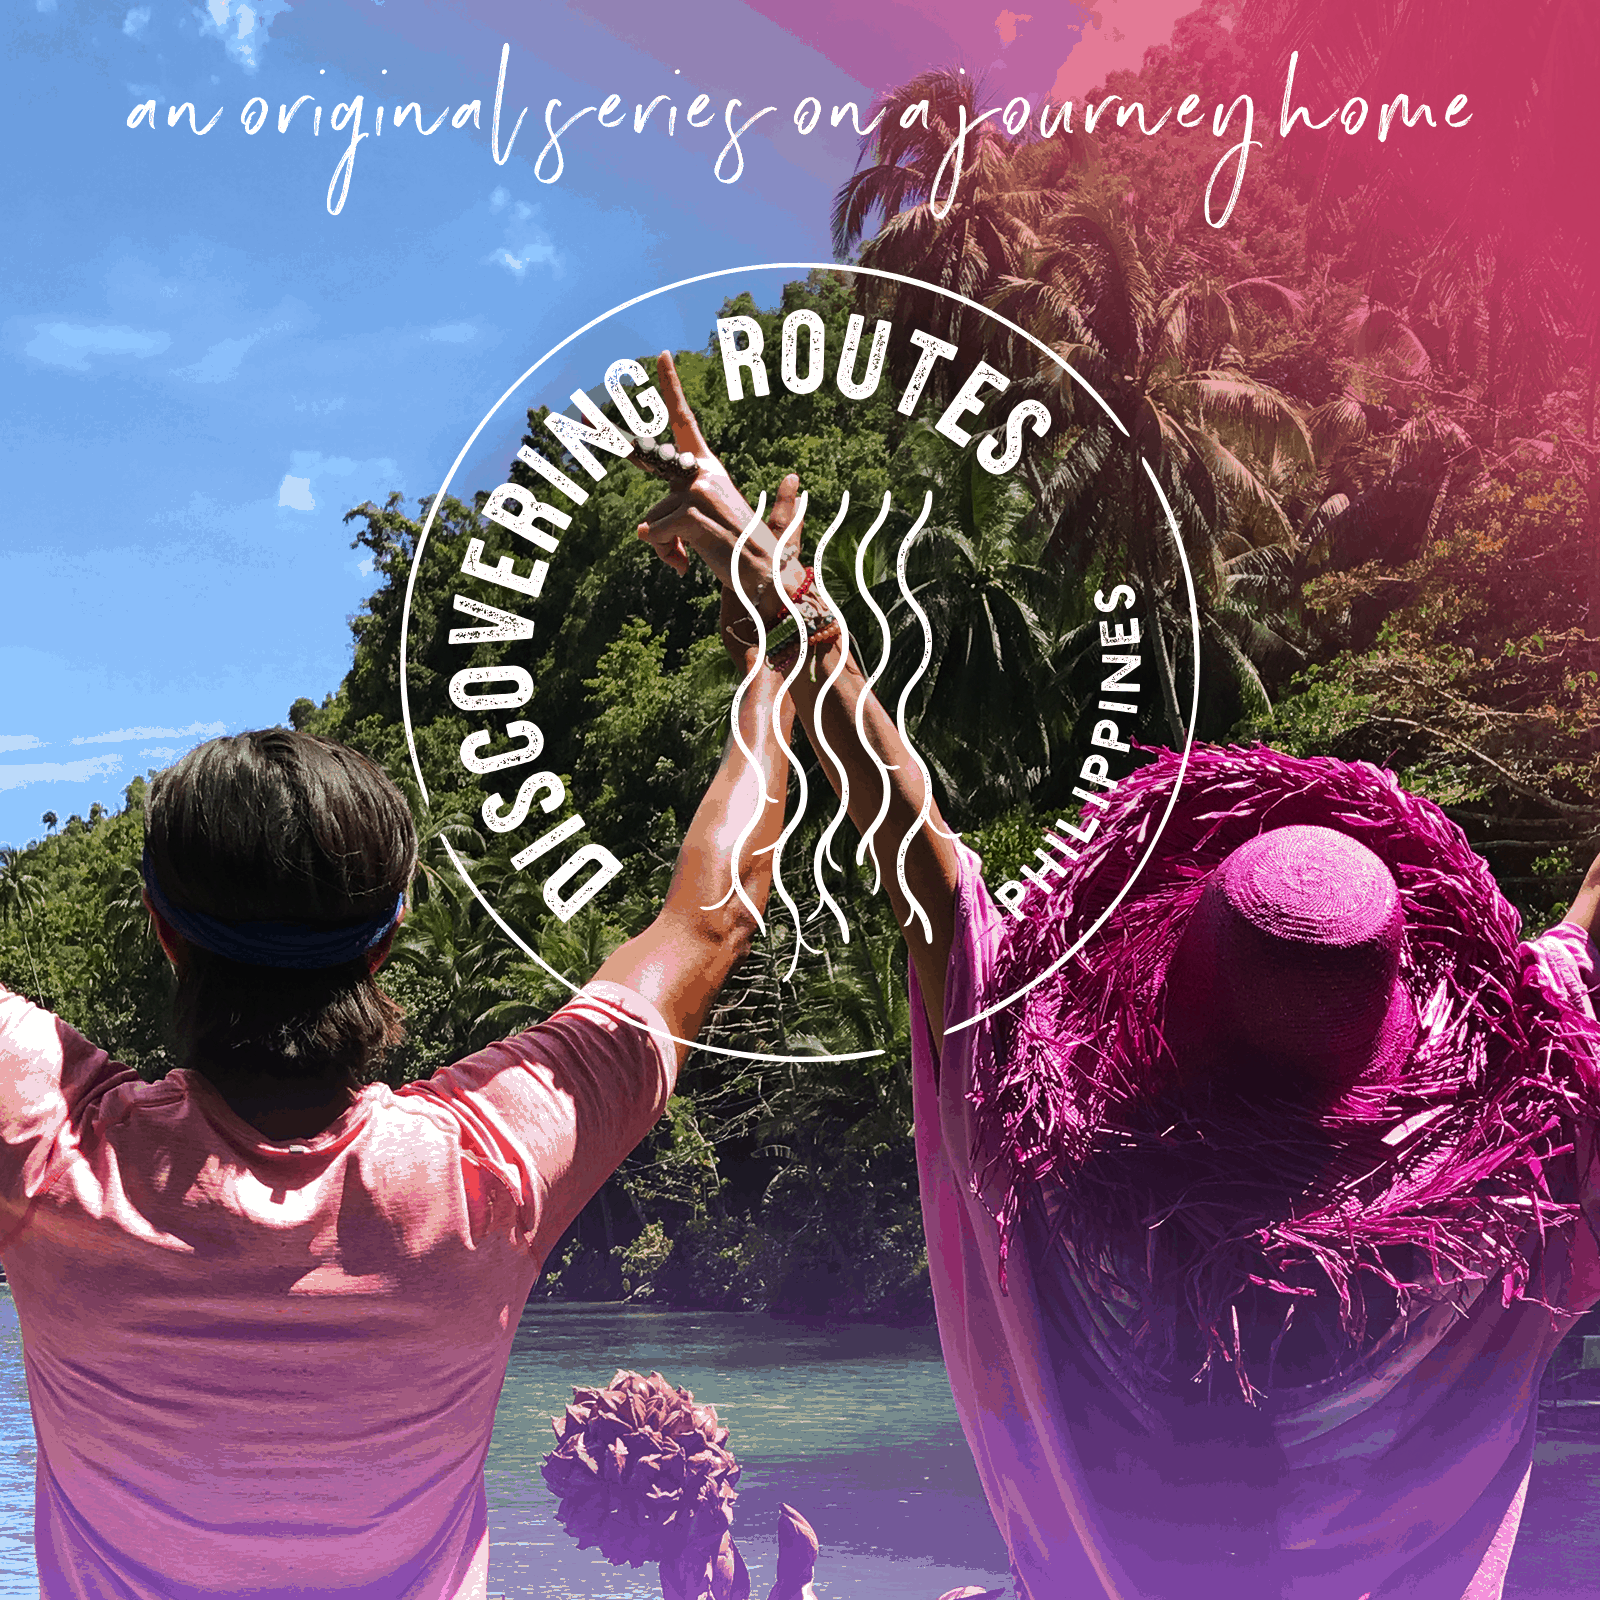 Discovering Routes is a new show about Misti and Garrett Gee, setting off to discover Philippines and their roots